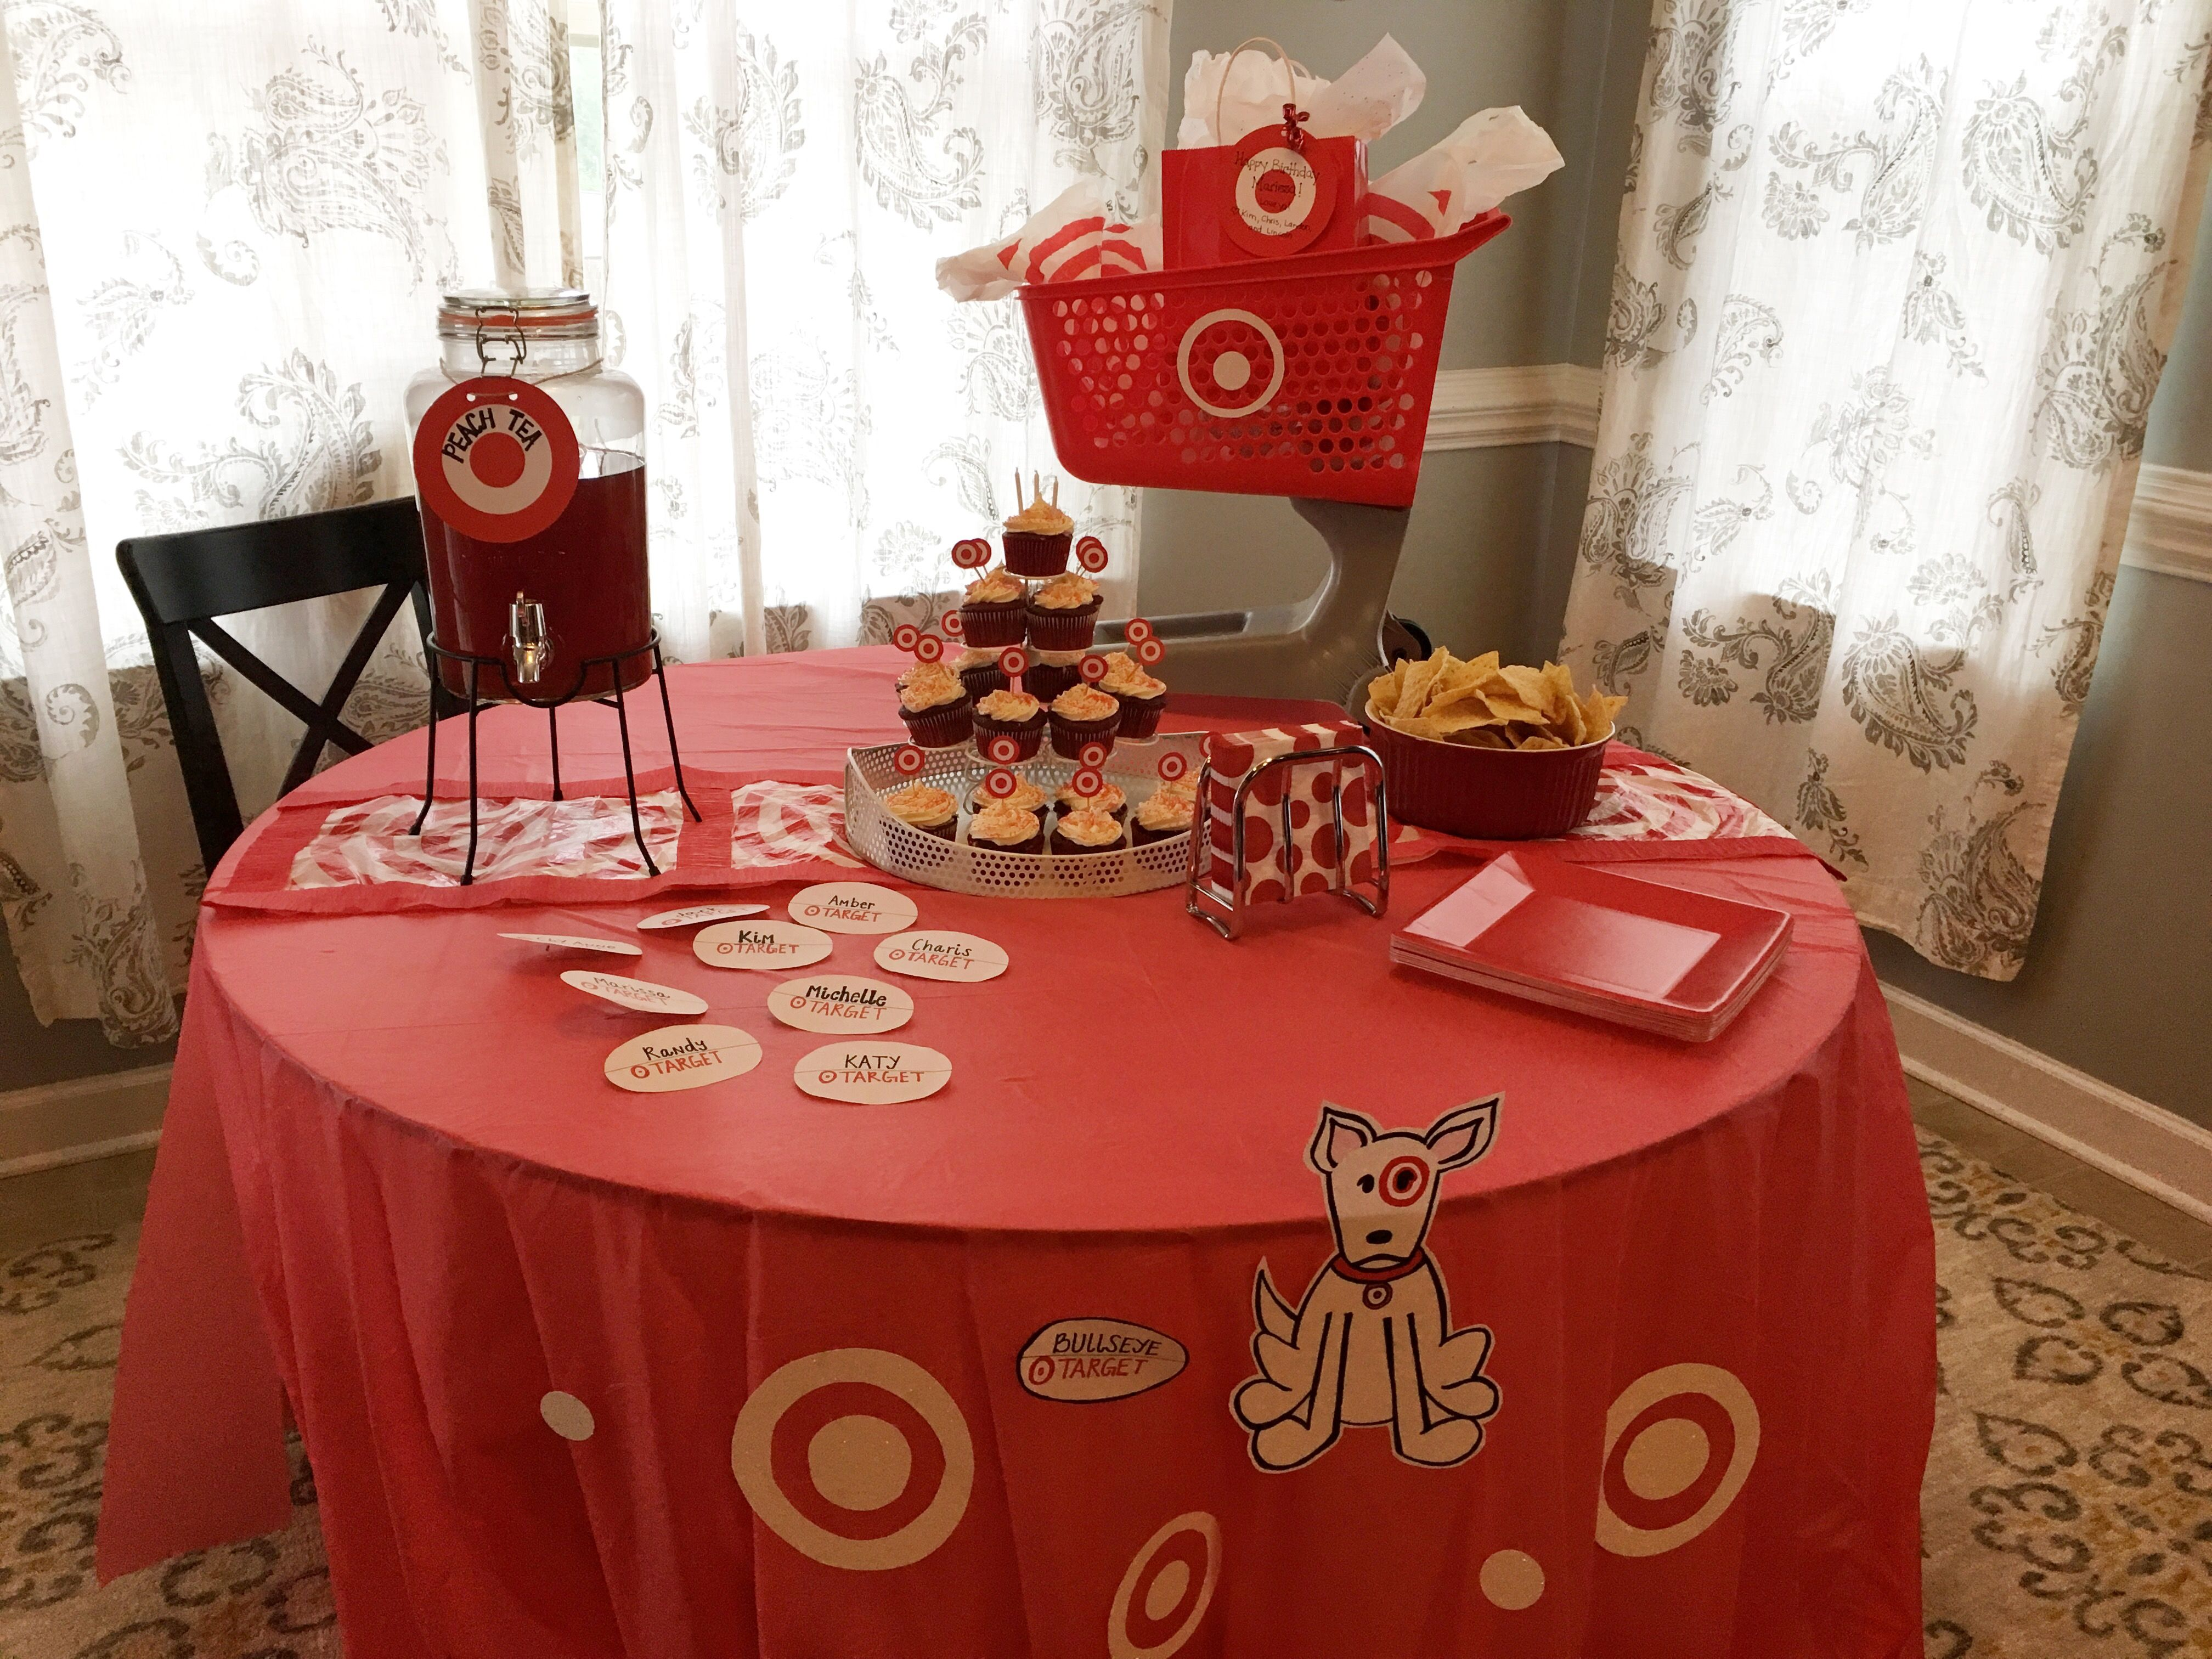 Pin by Kimberly Pendergrass on Target themed party